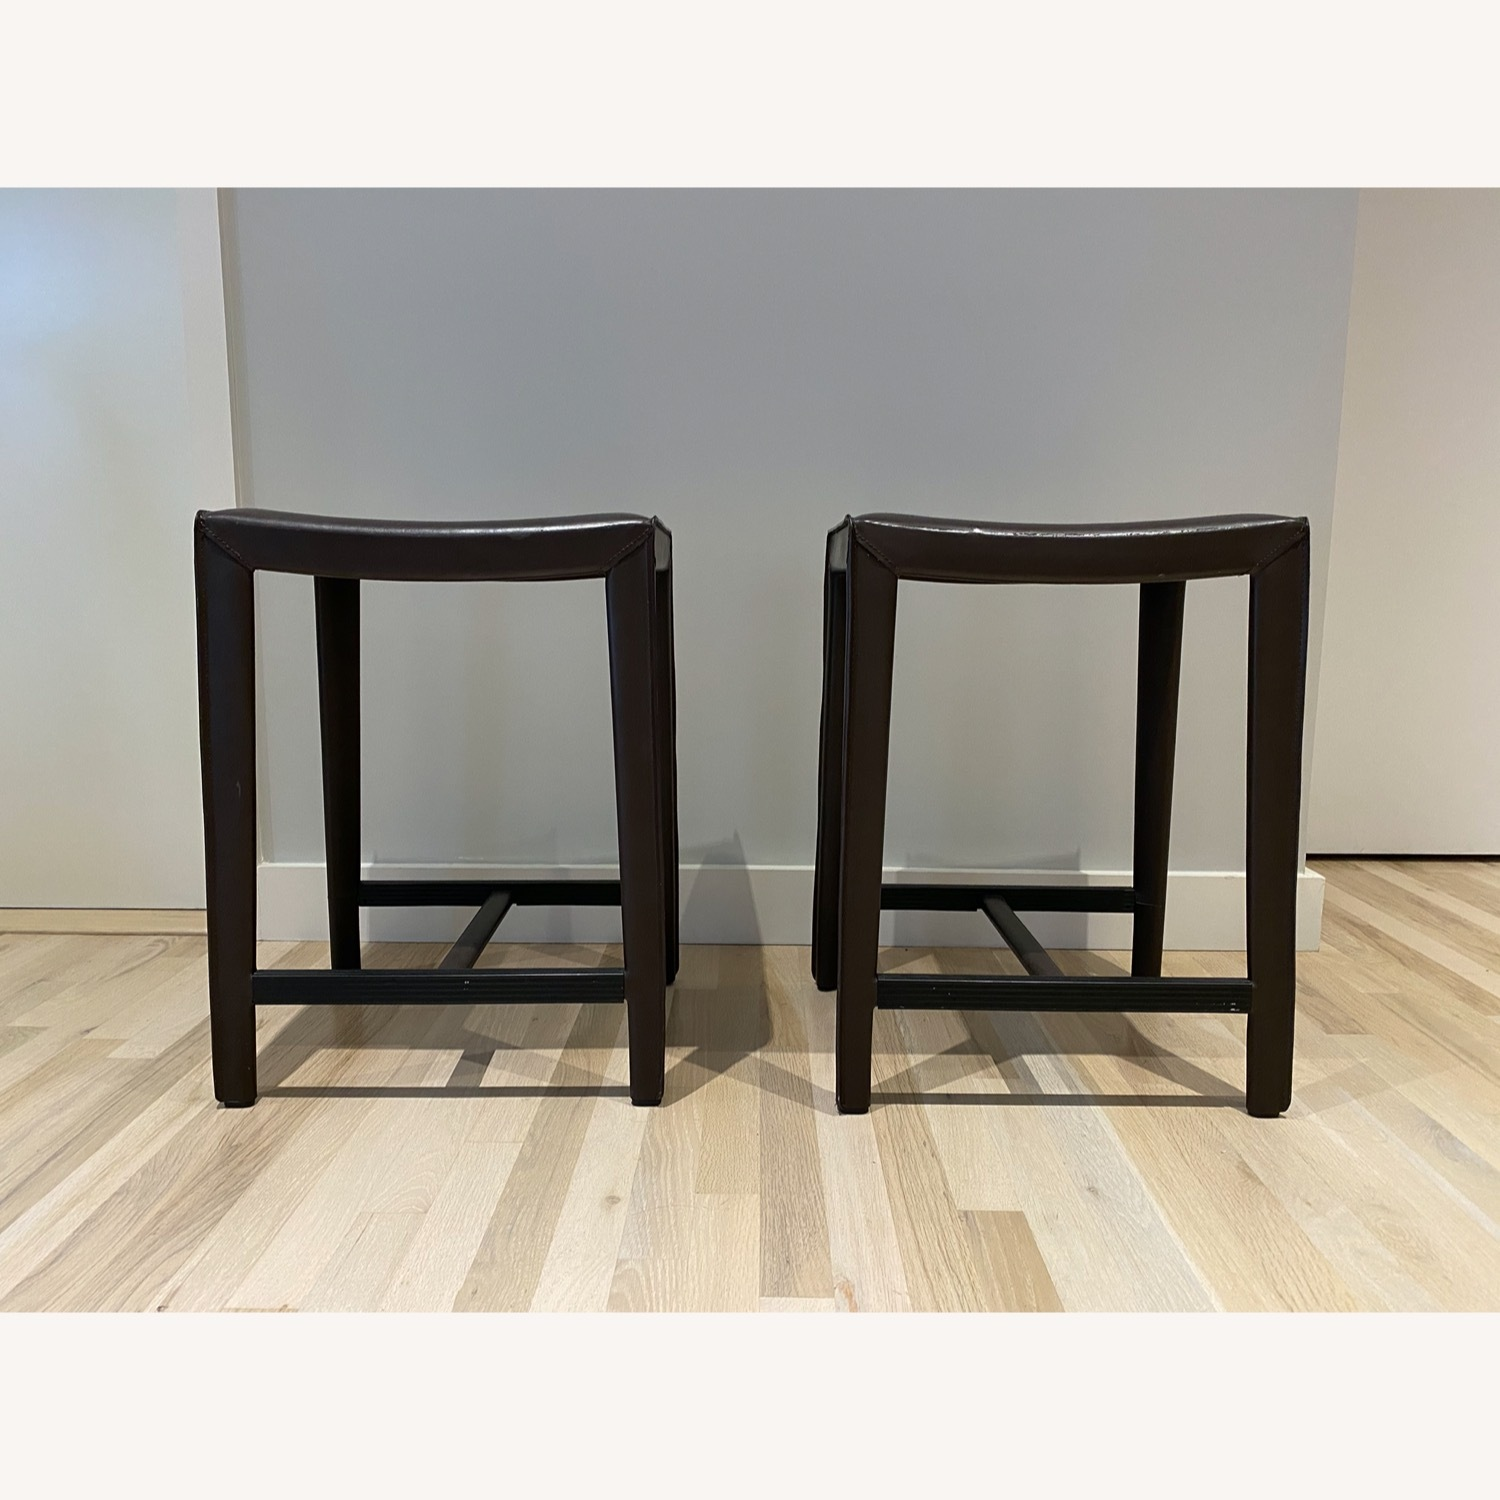 Set of Crate & Barrel Backless Counter Stools - image-1